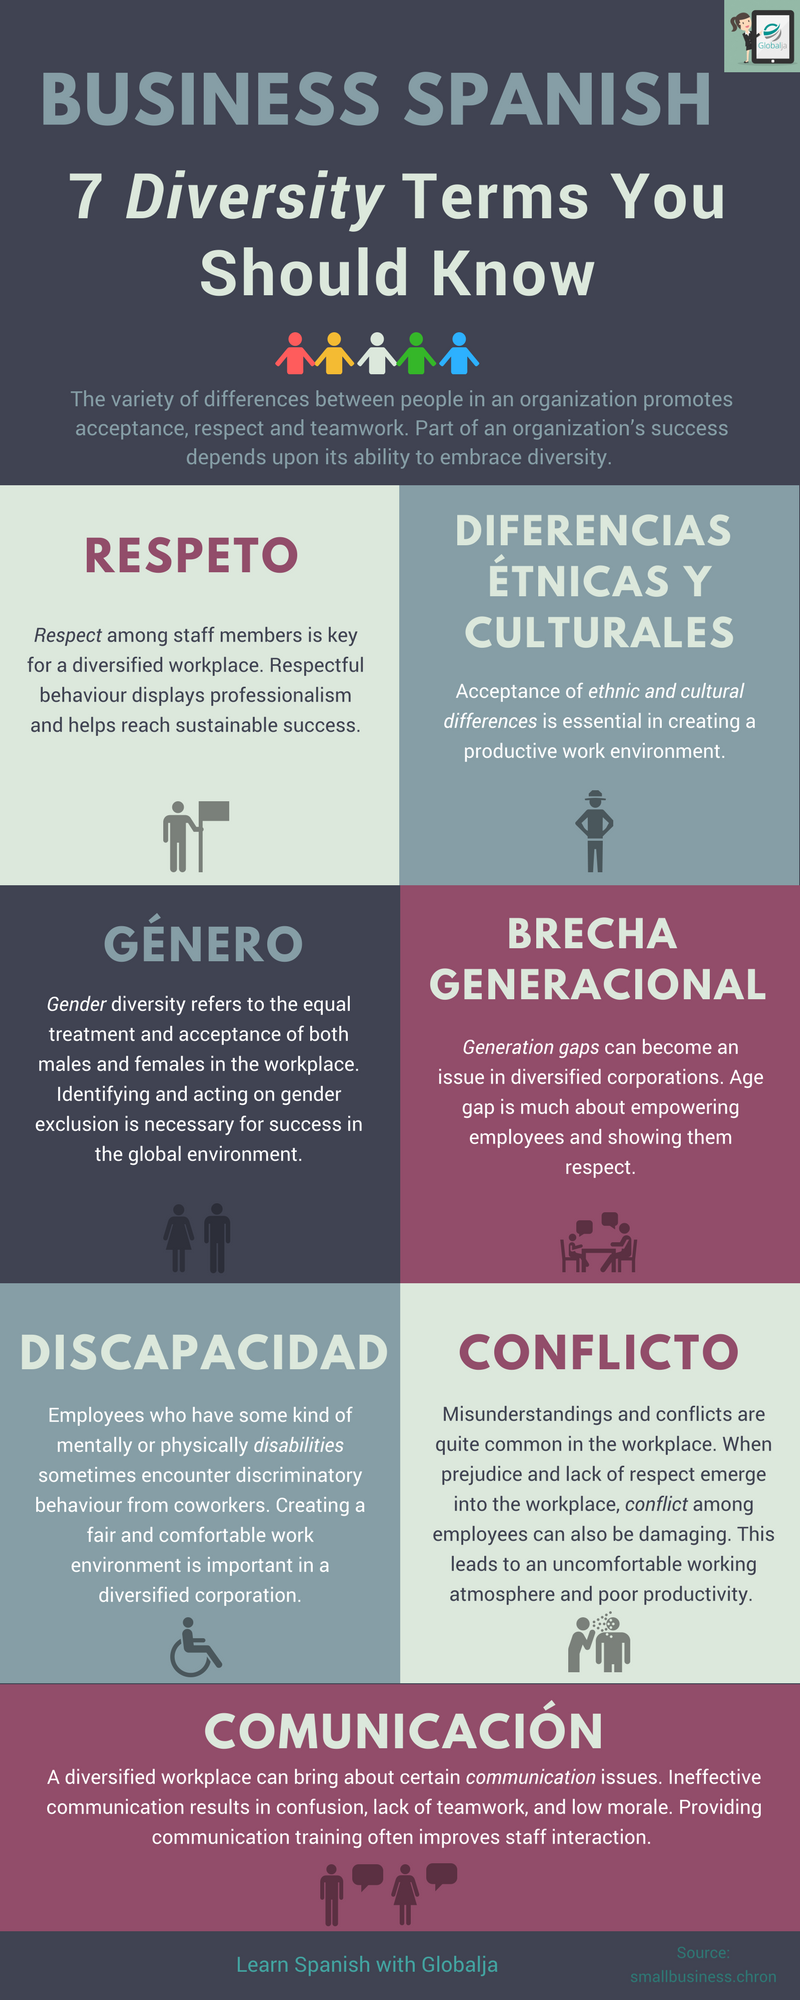 Business Spanish - 7 Diversity Terms You Should Know